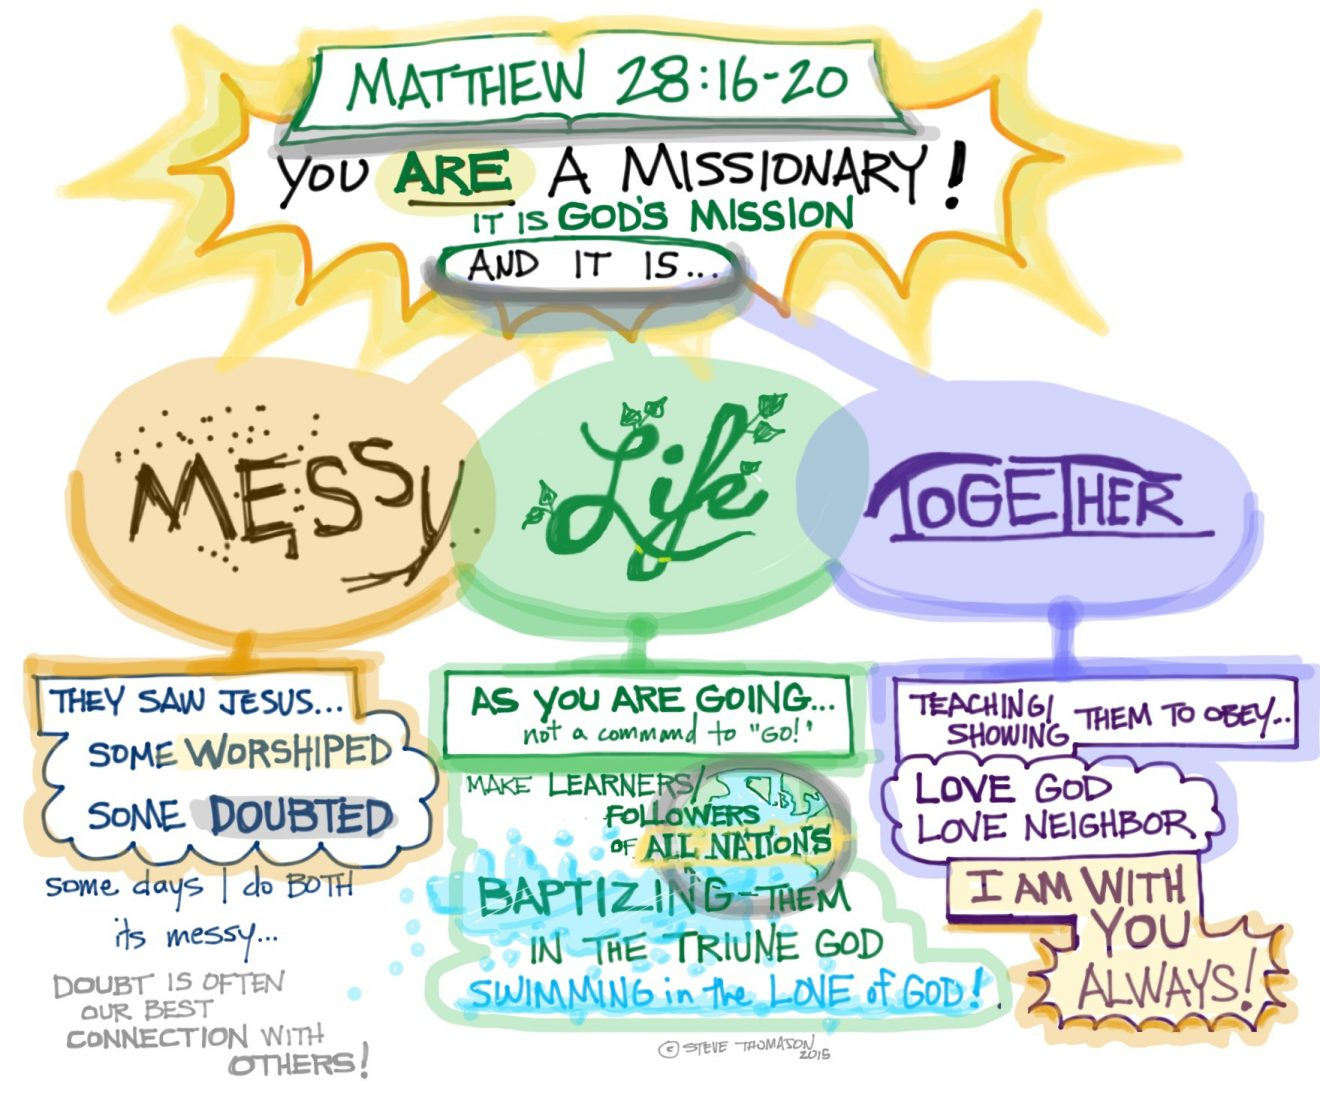 Our Messy Life Together | A Sermon on the Great Commission